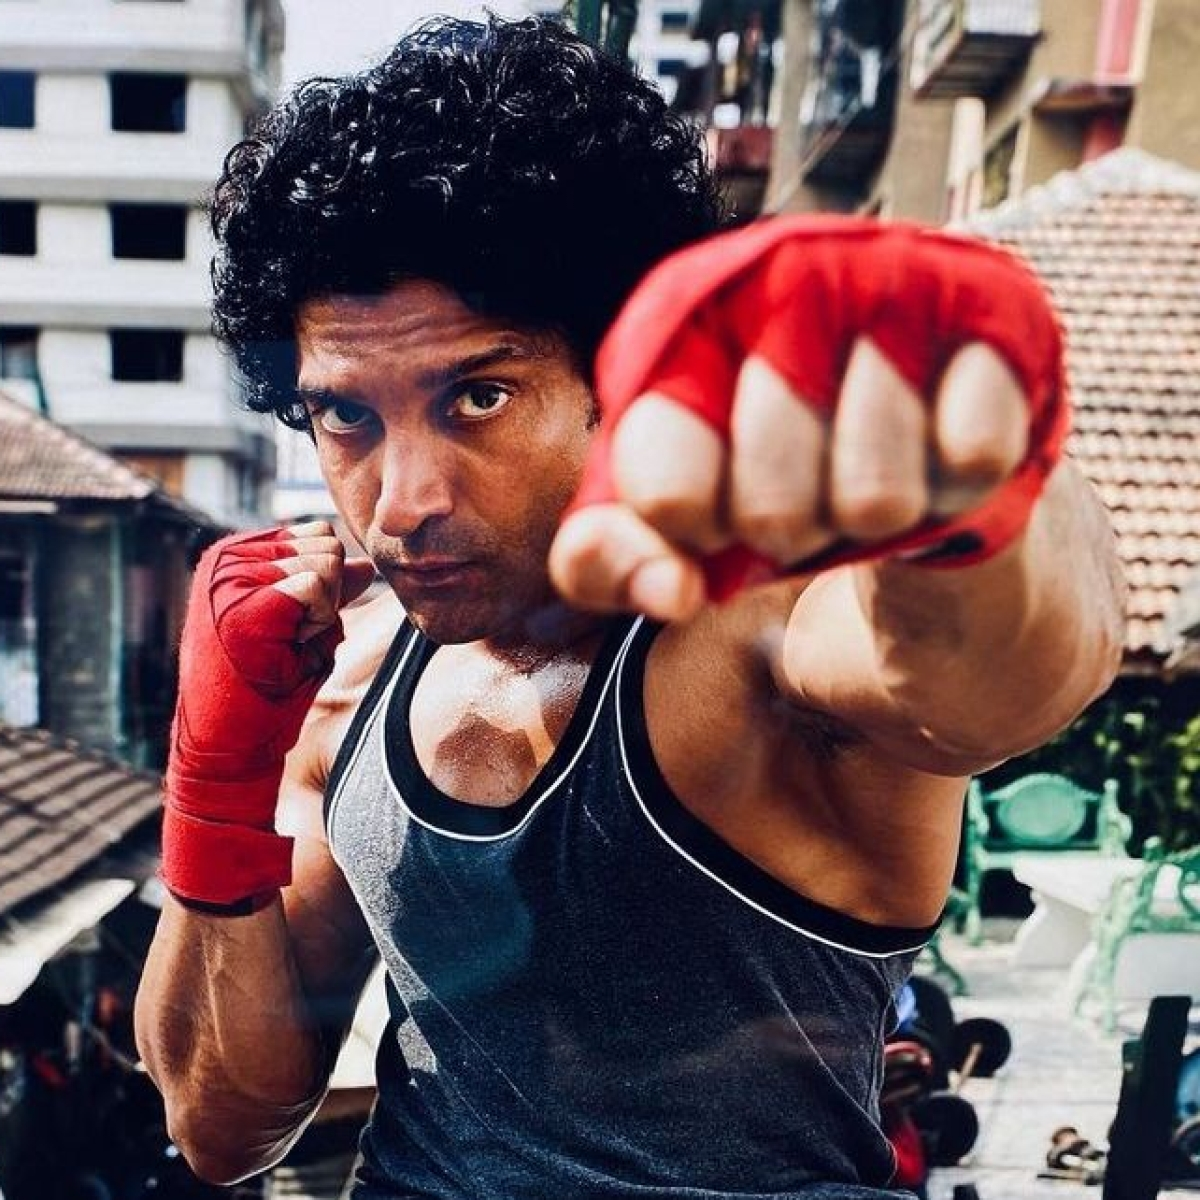 Farhan Akhtar responds after being called out for using drive-in vaccination facility meant for 60+, specially-abled